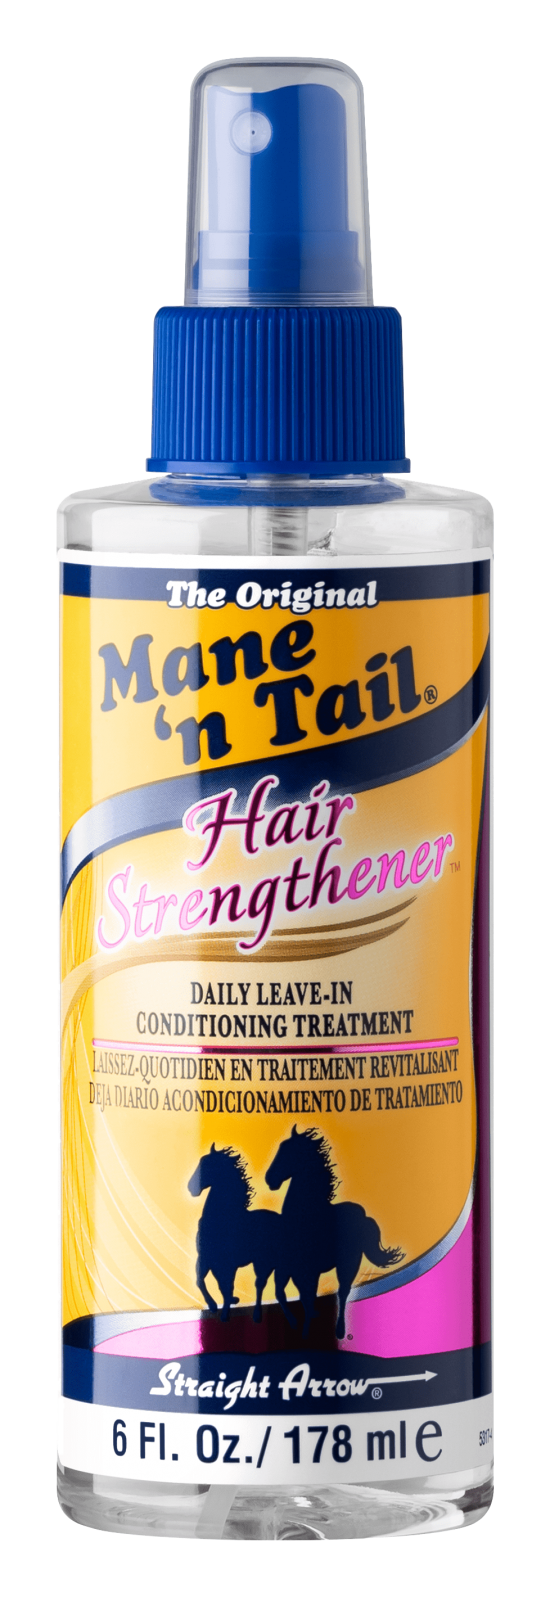 Hair Strengthener 6 oz spray bottle